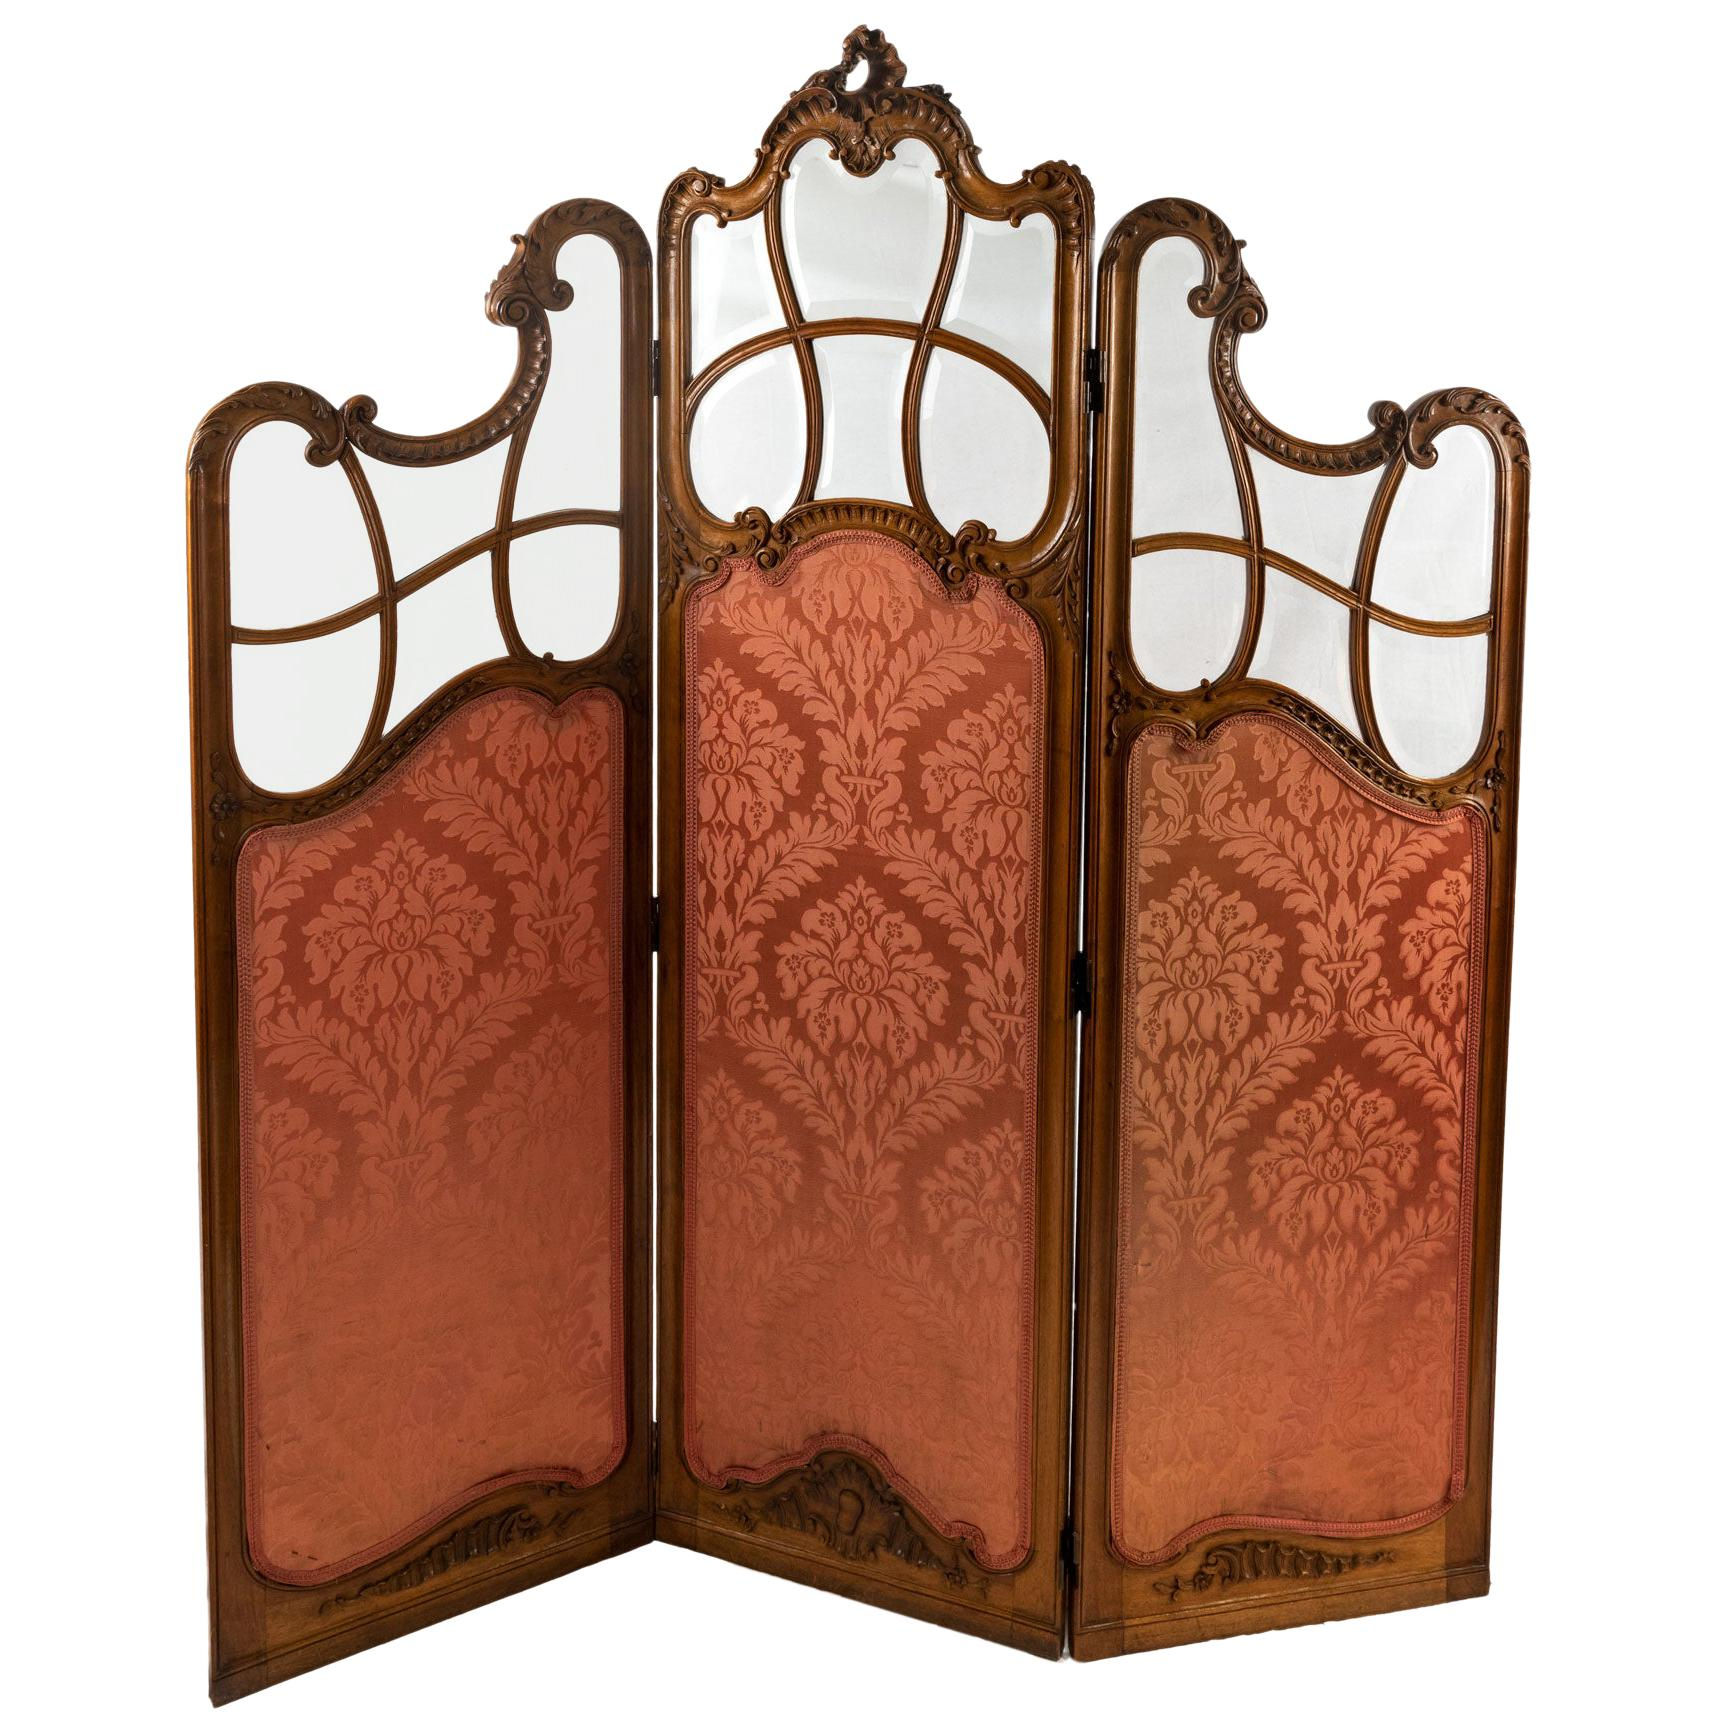 French Louis XV Style Three-Panel Screen in Walnut